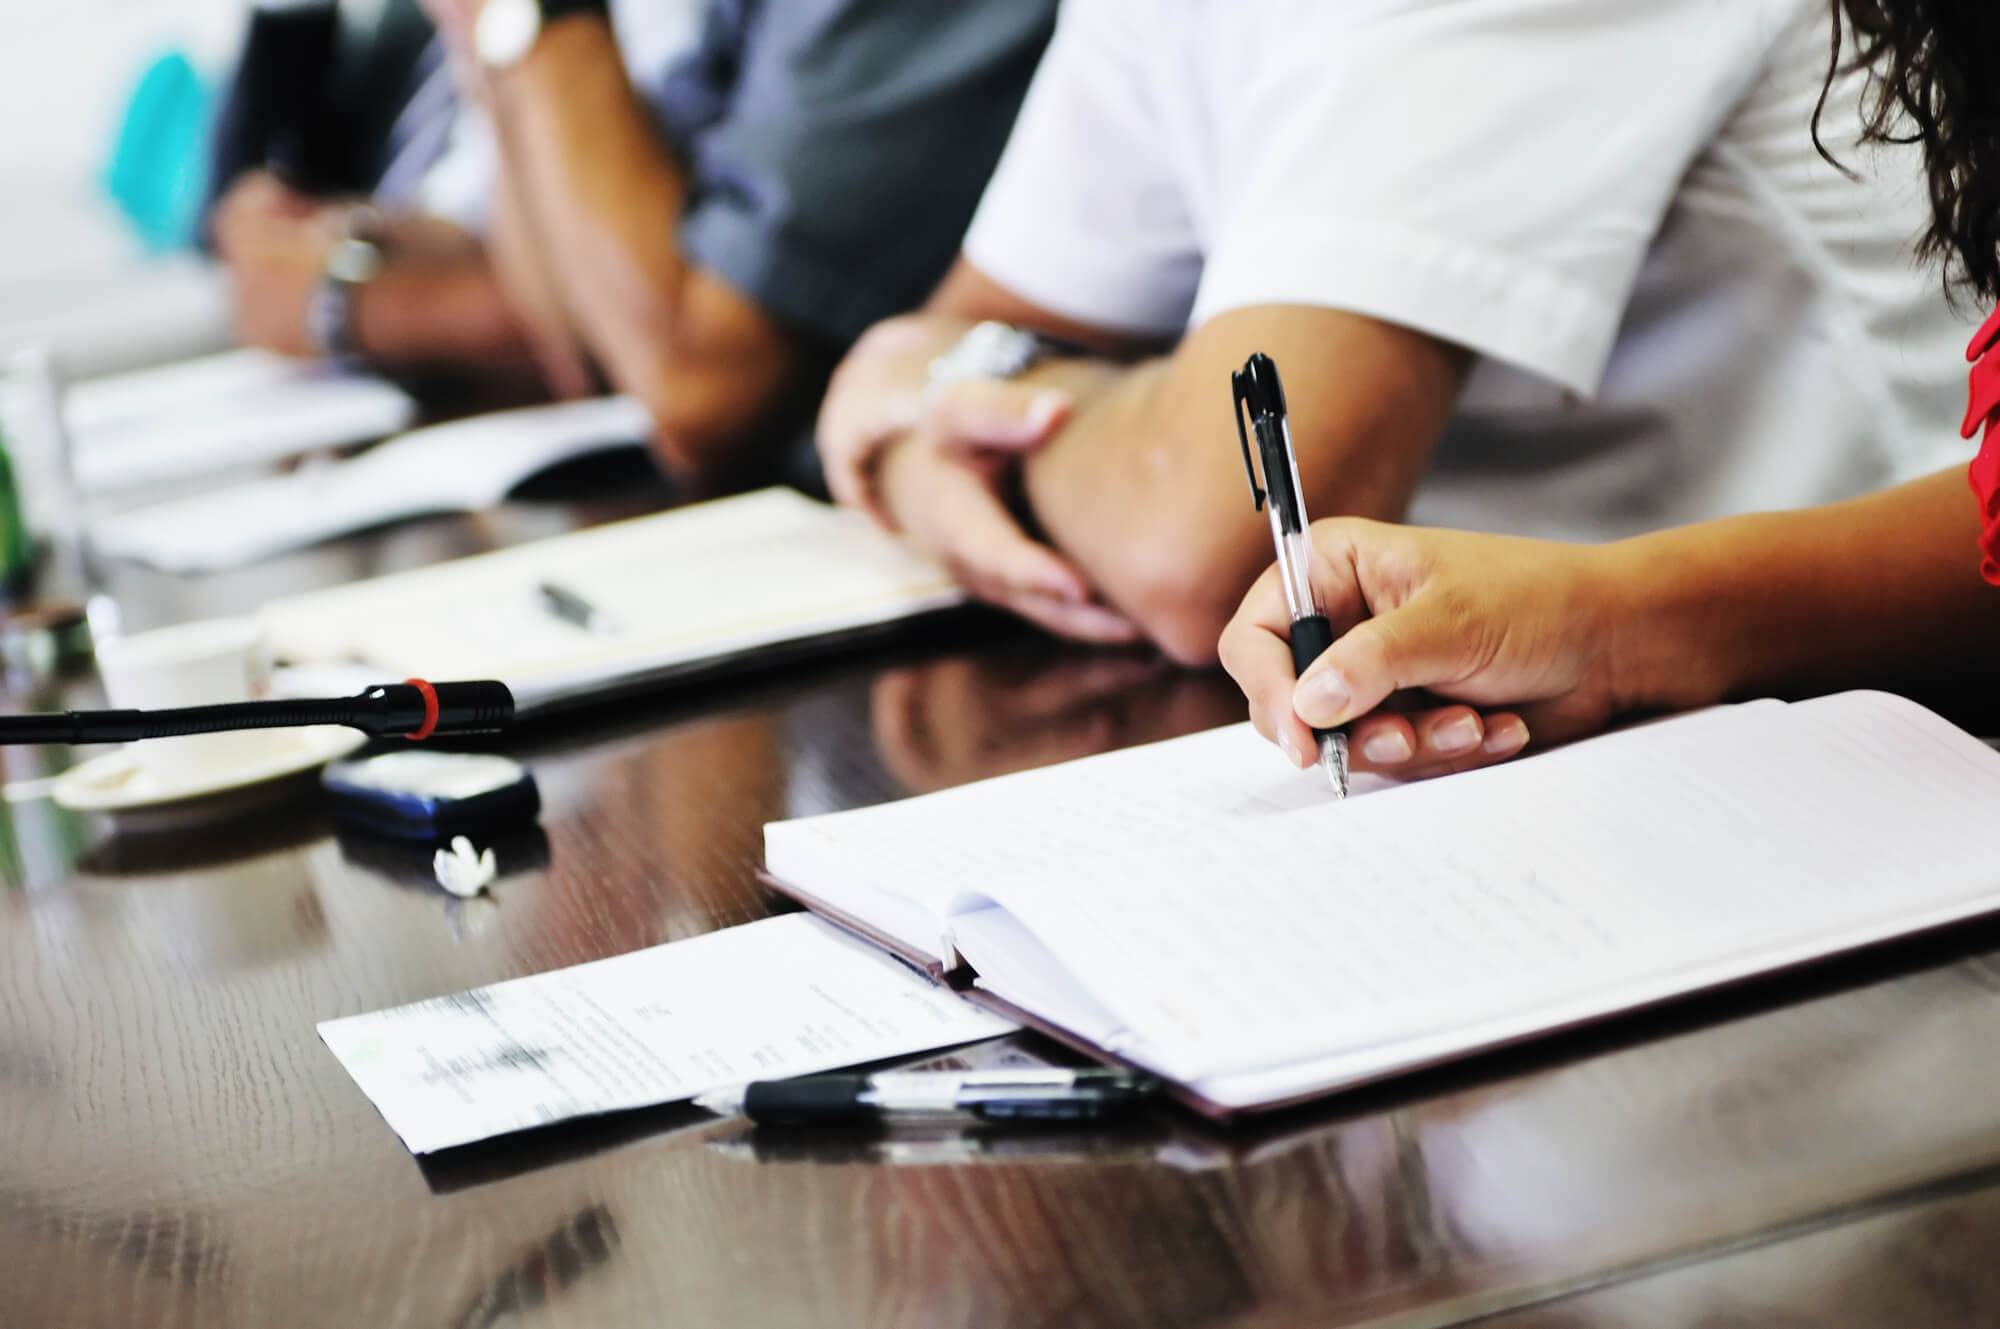 person taking notes during a meeting